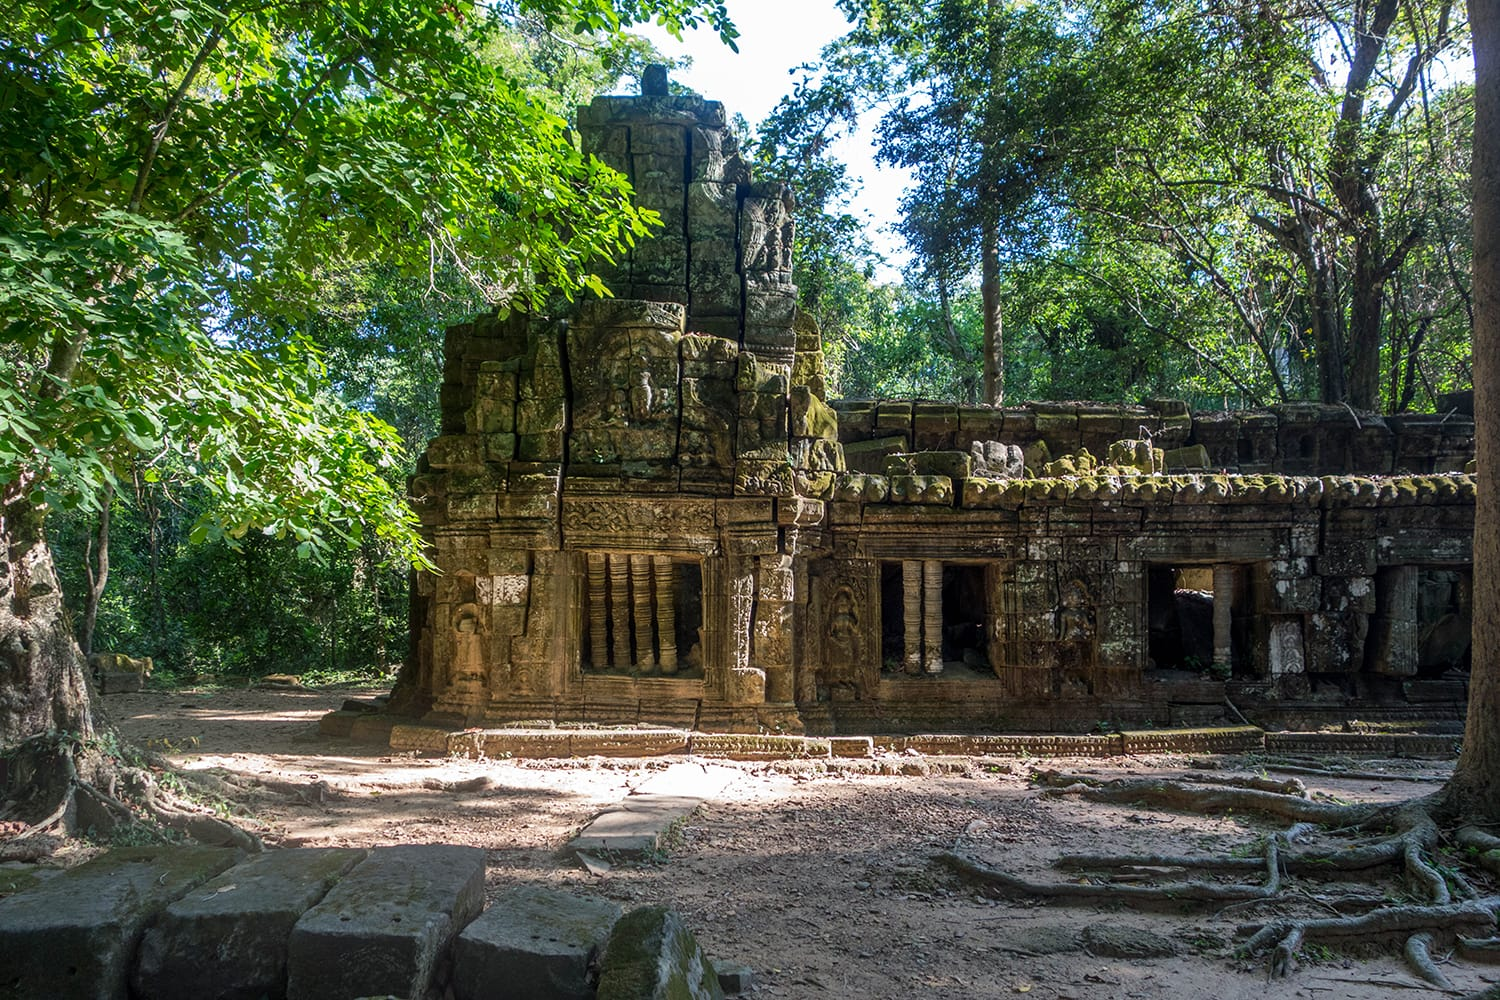 Temple at Angkor Wat hidden in the jungle. Cambodia